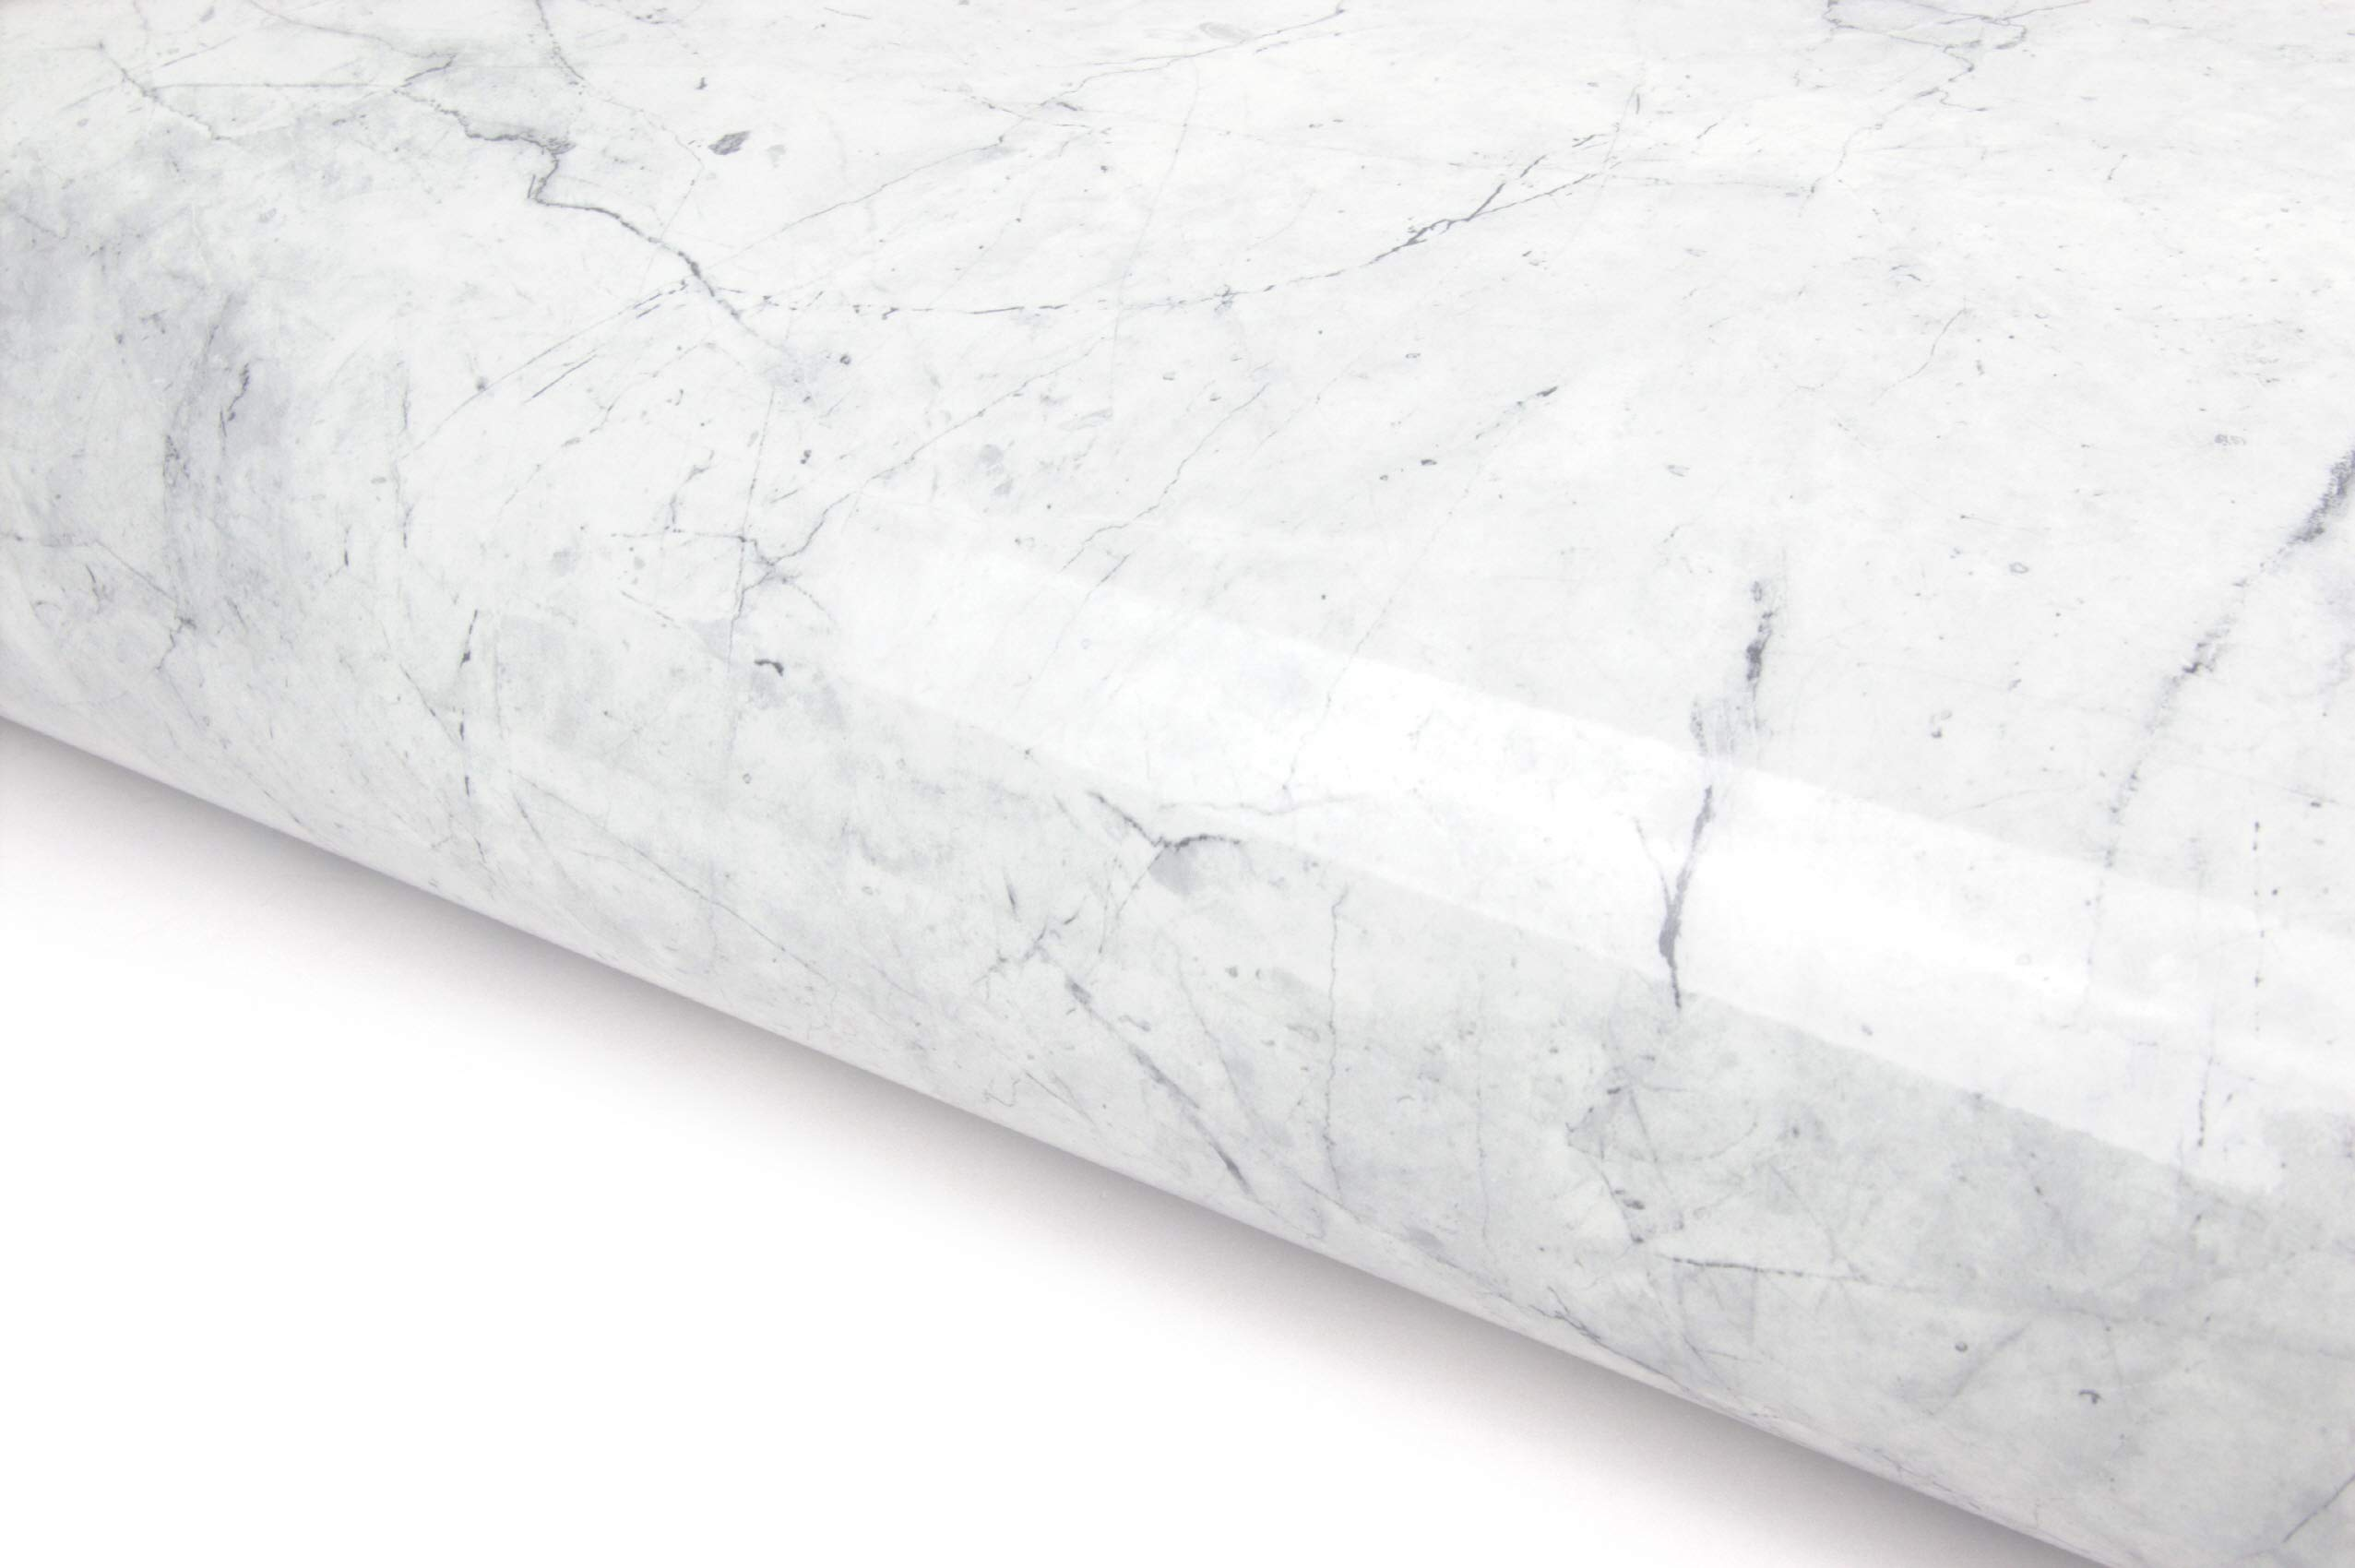 Espier Marble Contact Paper Self-Adhesive Film Table Cover Wall Decor Sticker Waterproof Decorative Marble for Kitchen Countertop Cabinet Furniture 16inx79in